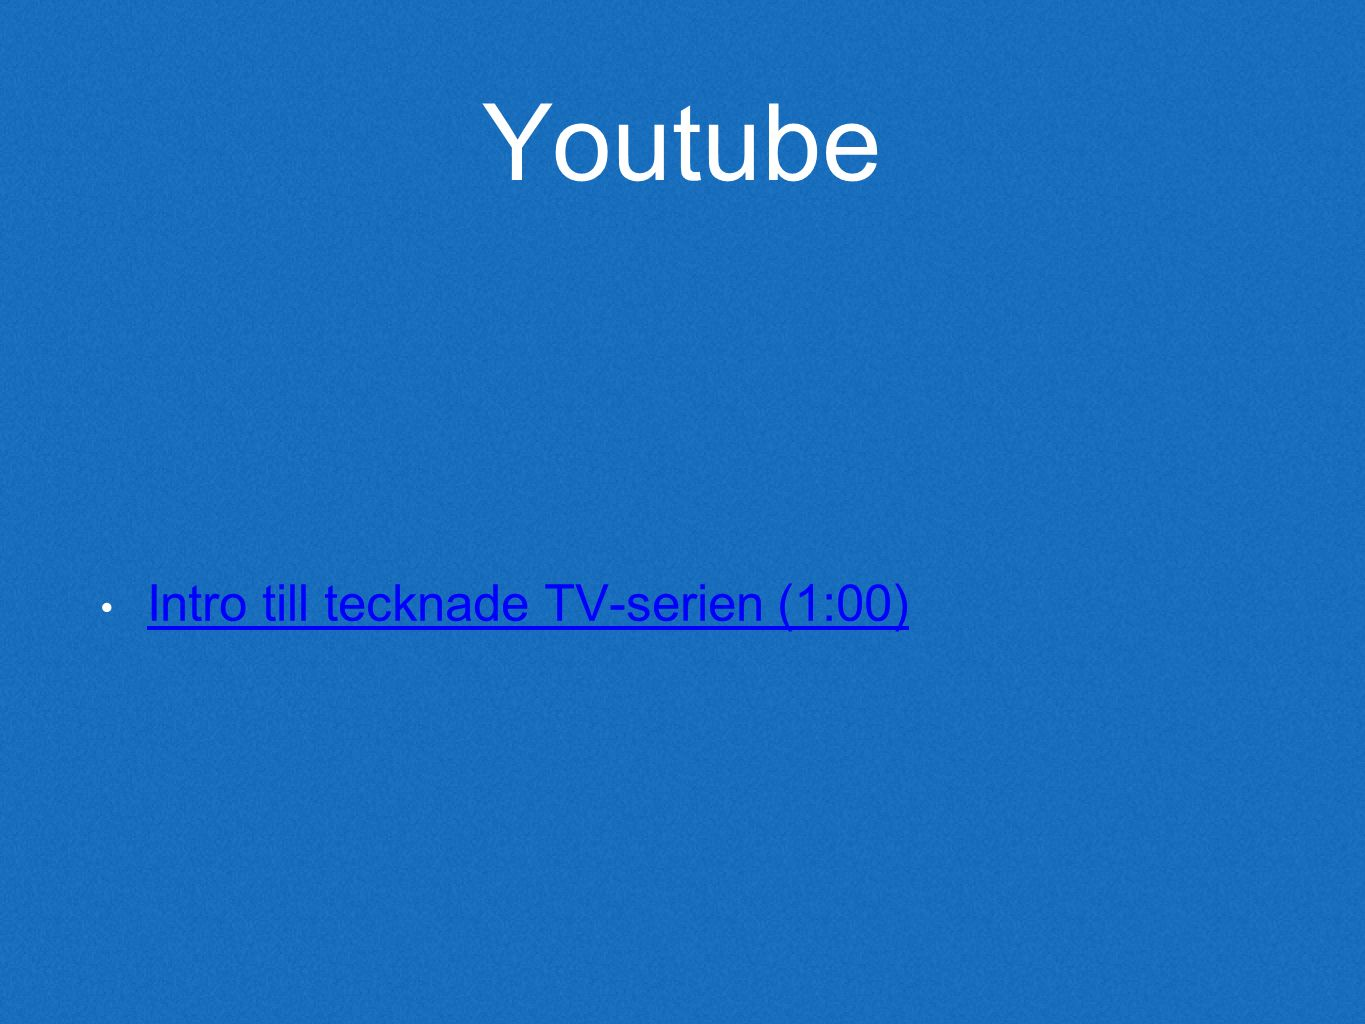 Youtube Intro till tecknade TV-serien (1:00)